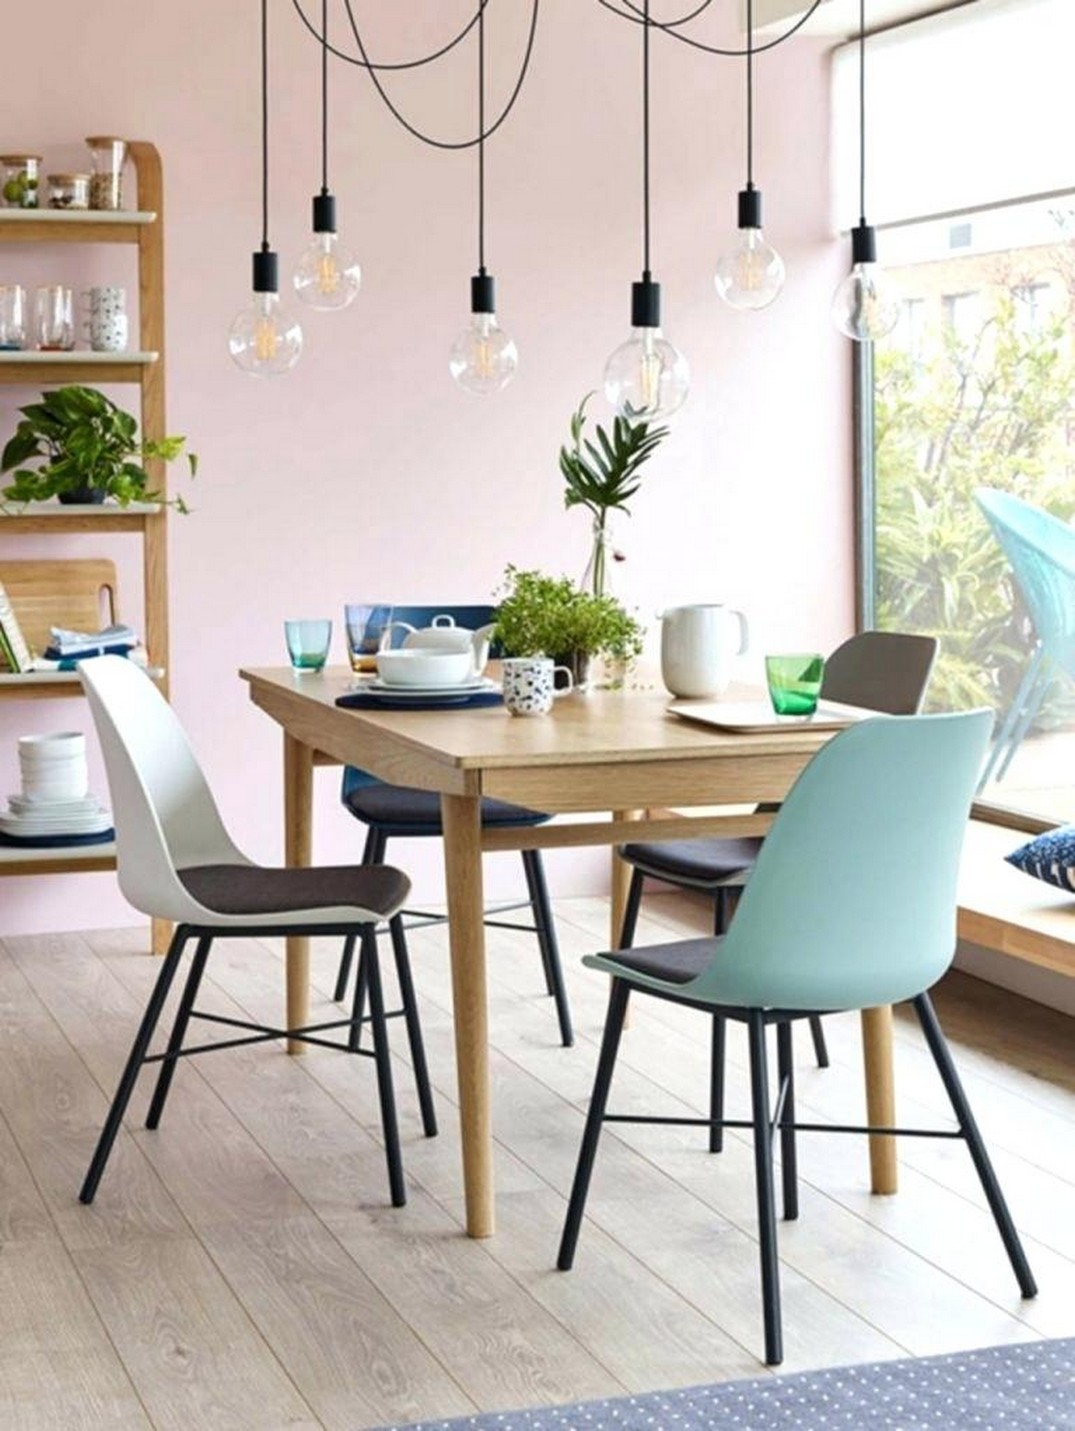 19 Hot Dining Room Decoration Concept